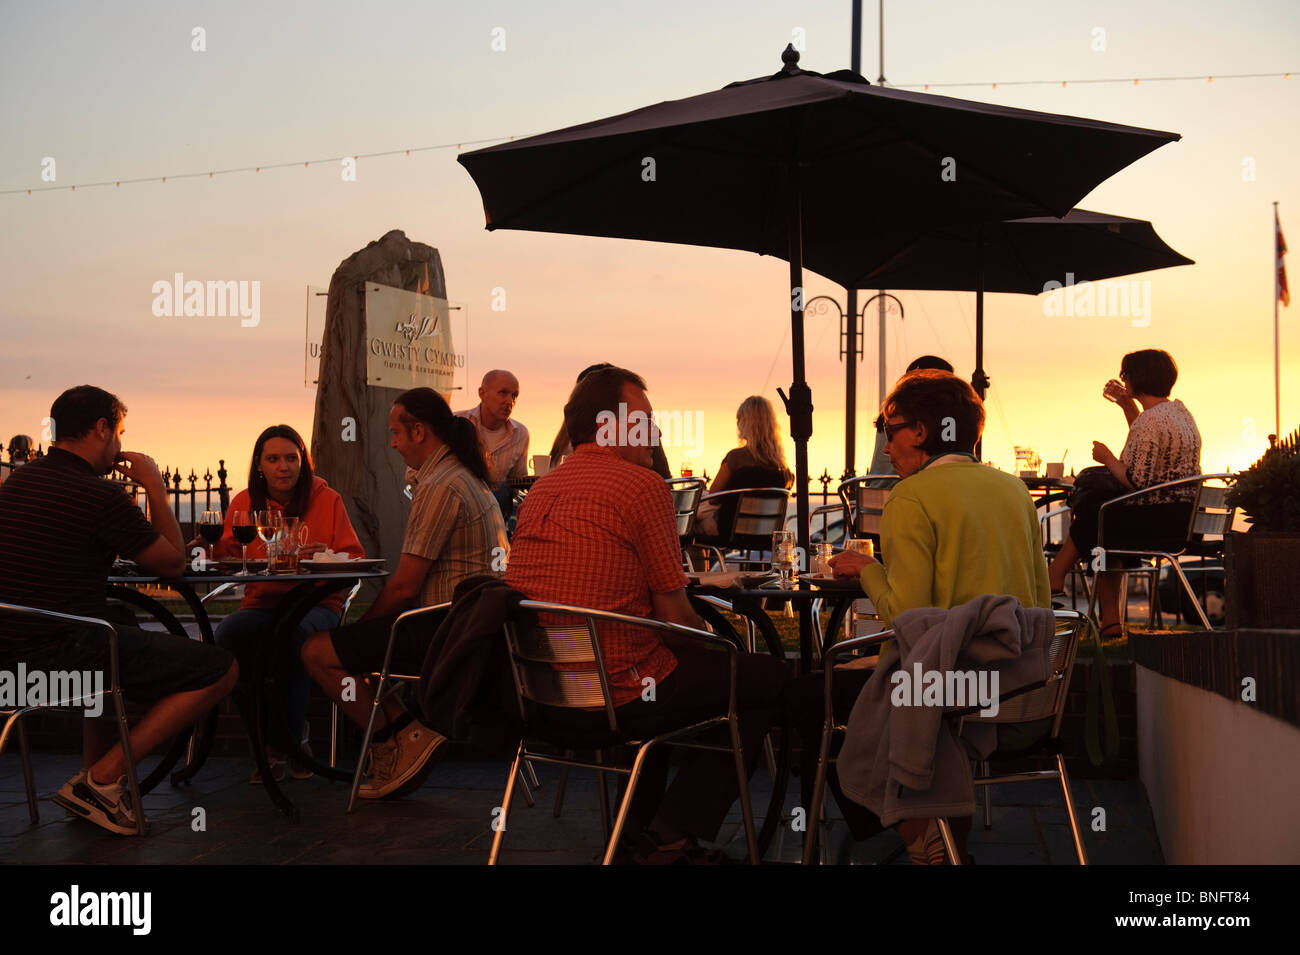 People eating food outside on a Summer evening, Gwesty Cymru 5 star hotel and restaurant, Aberystwyth Wales UK - Stock Image